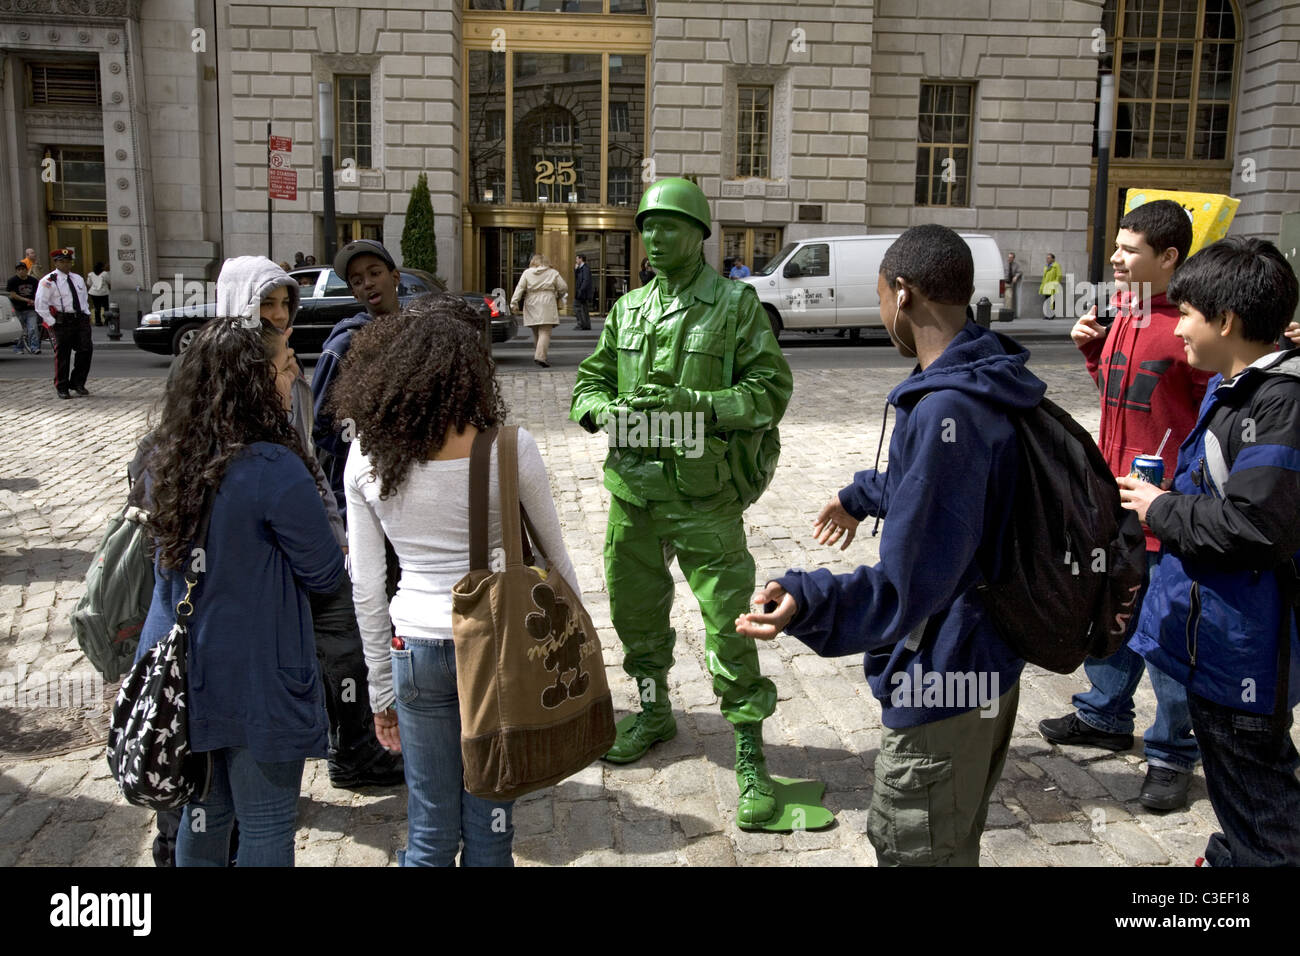 Street performer dressed as a 'GI sculpture' enthralls a group of young teenagers in Lower Manhattan. - Stock Image